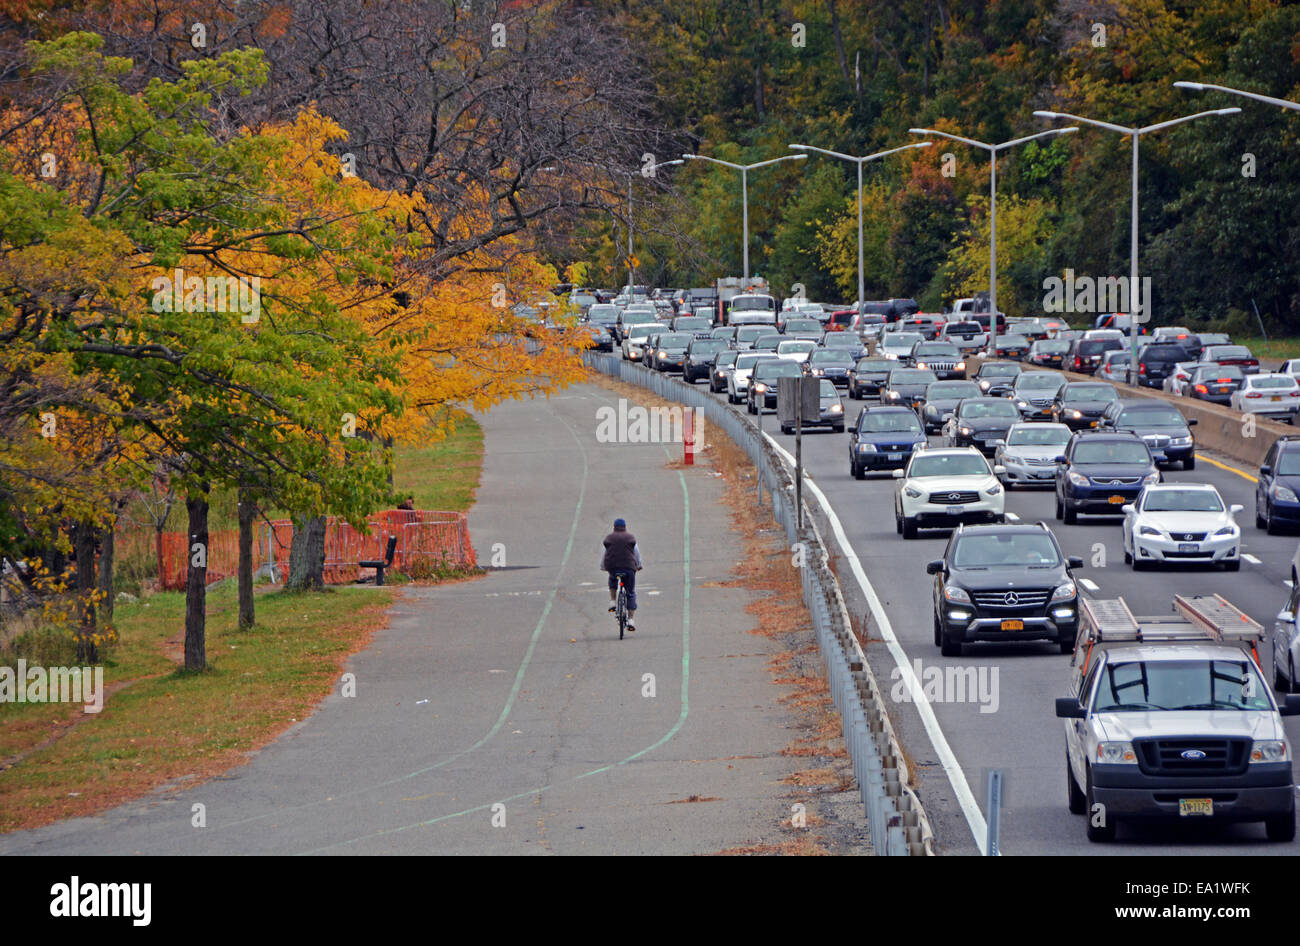 A man cycling near automobile traffic on an Autumn day near the Marina in Bayside, Queens, New York - Stock Image